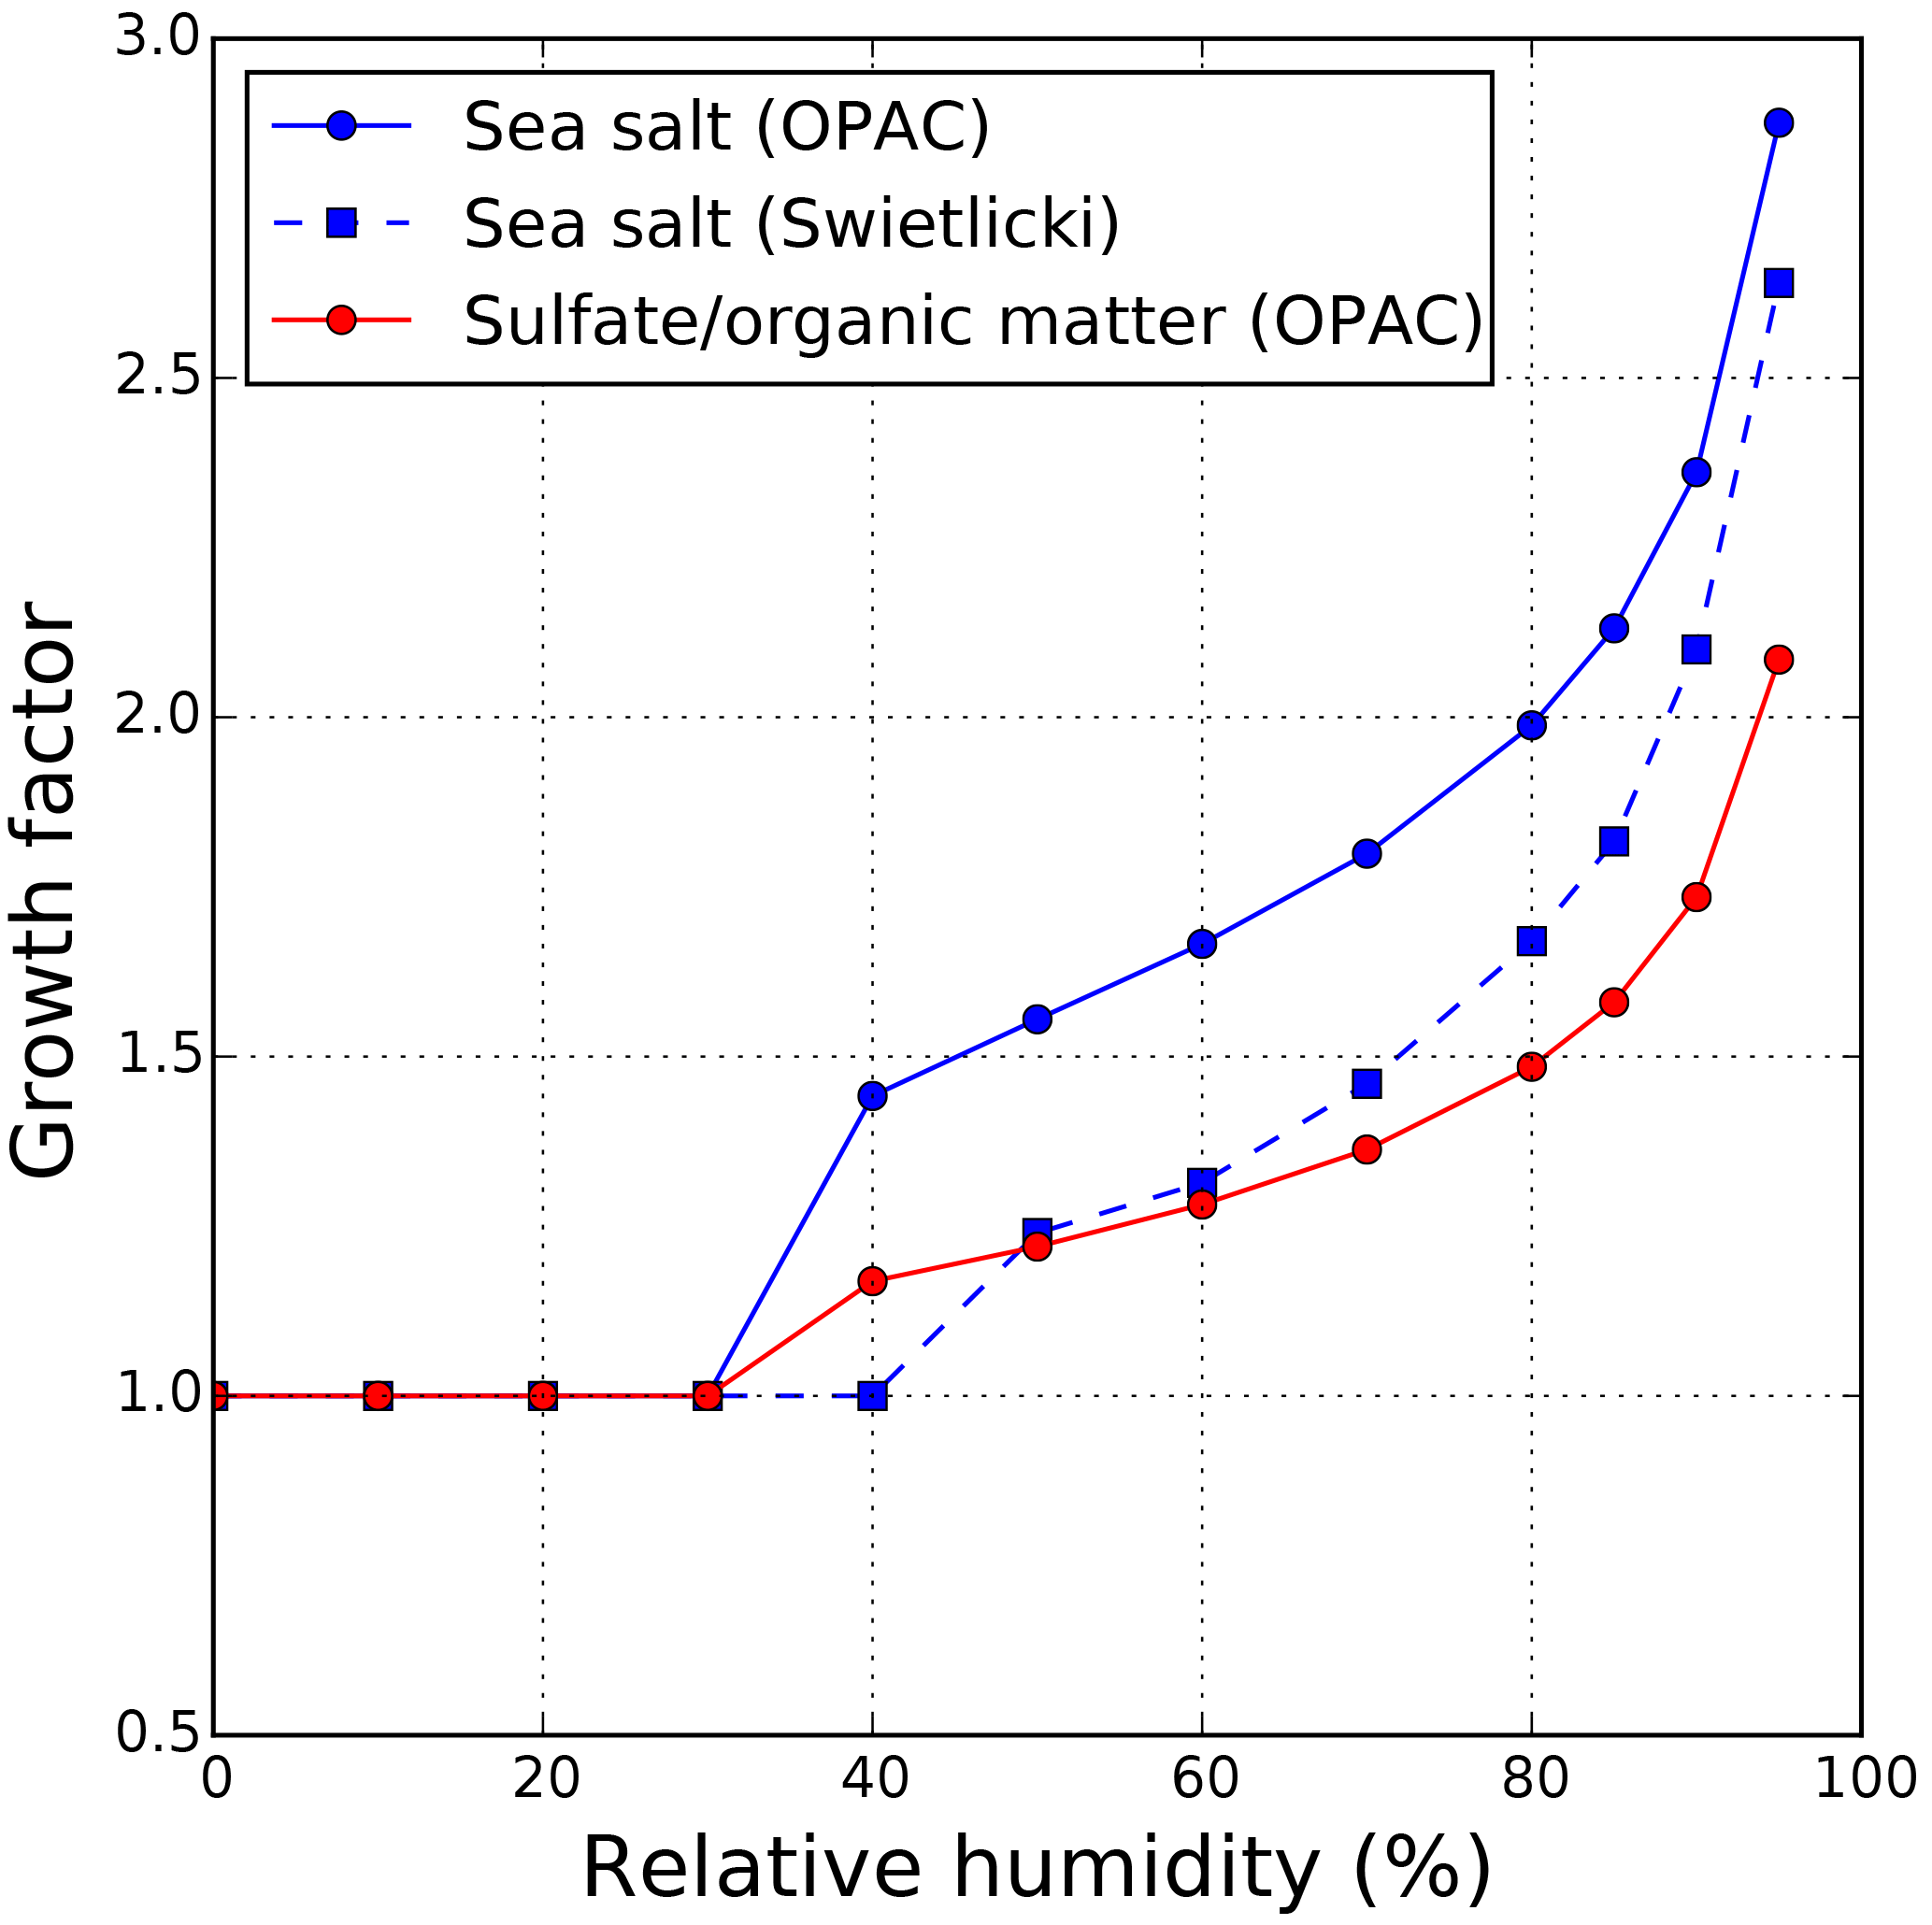 GMD - Evaluation of ECMWF-IFS (version 41R1) operational